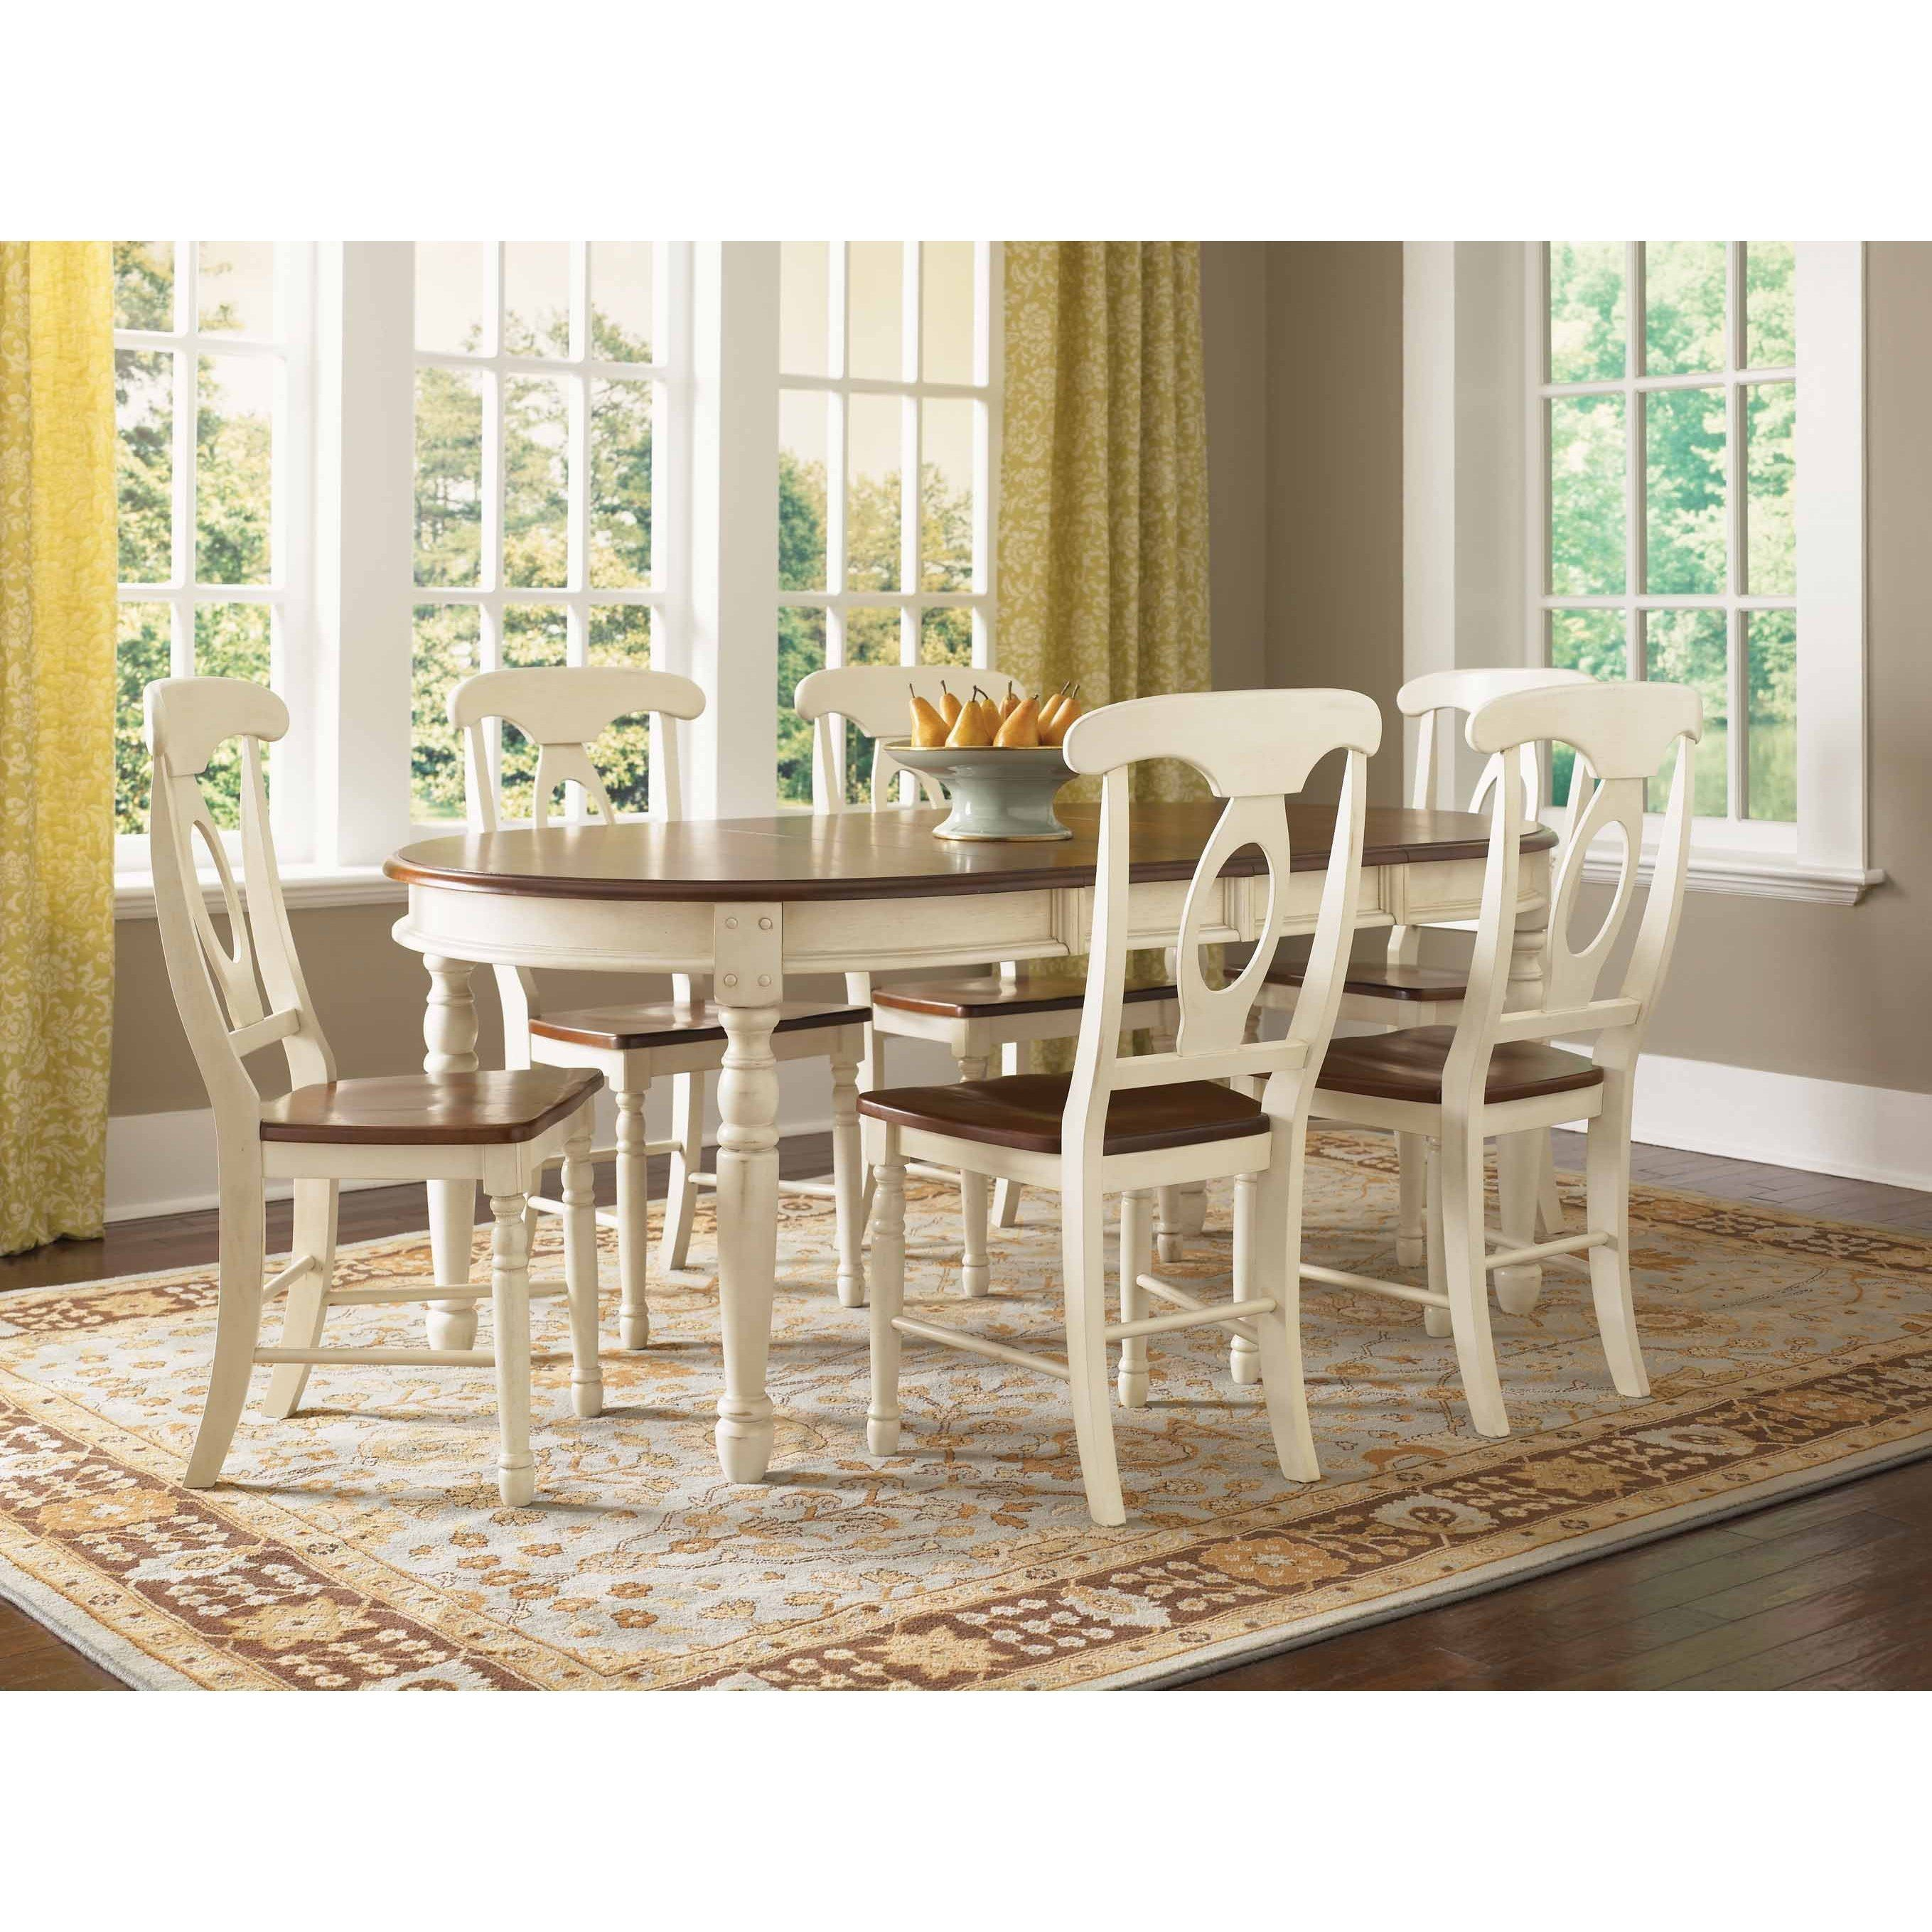 Kitchen Sets Furniture Simply Solid Samaria Solid Wood 5 Piece Dining Collection